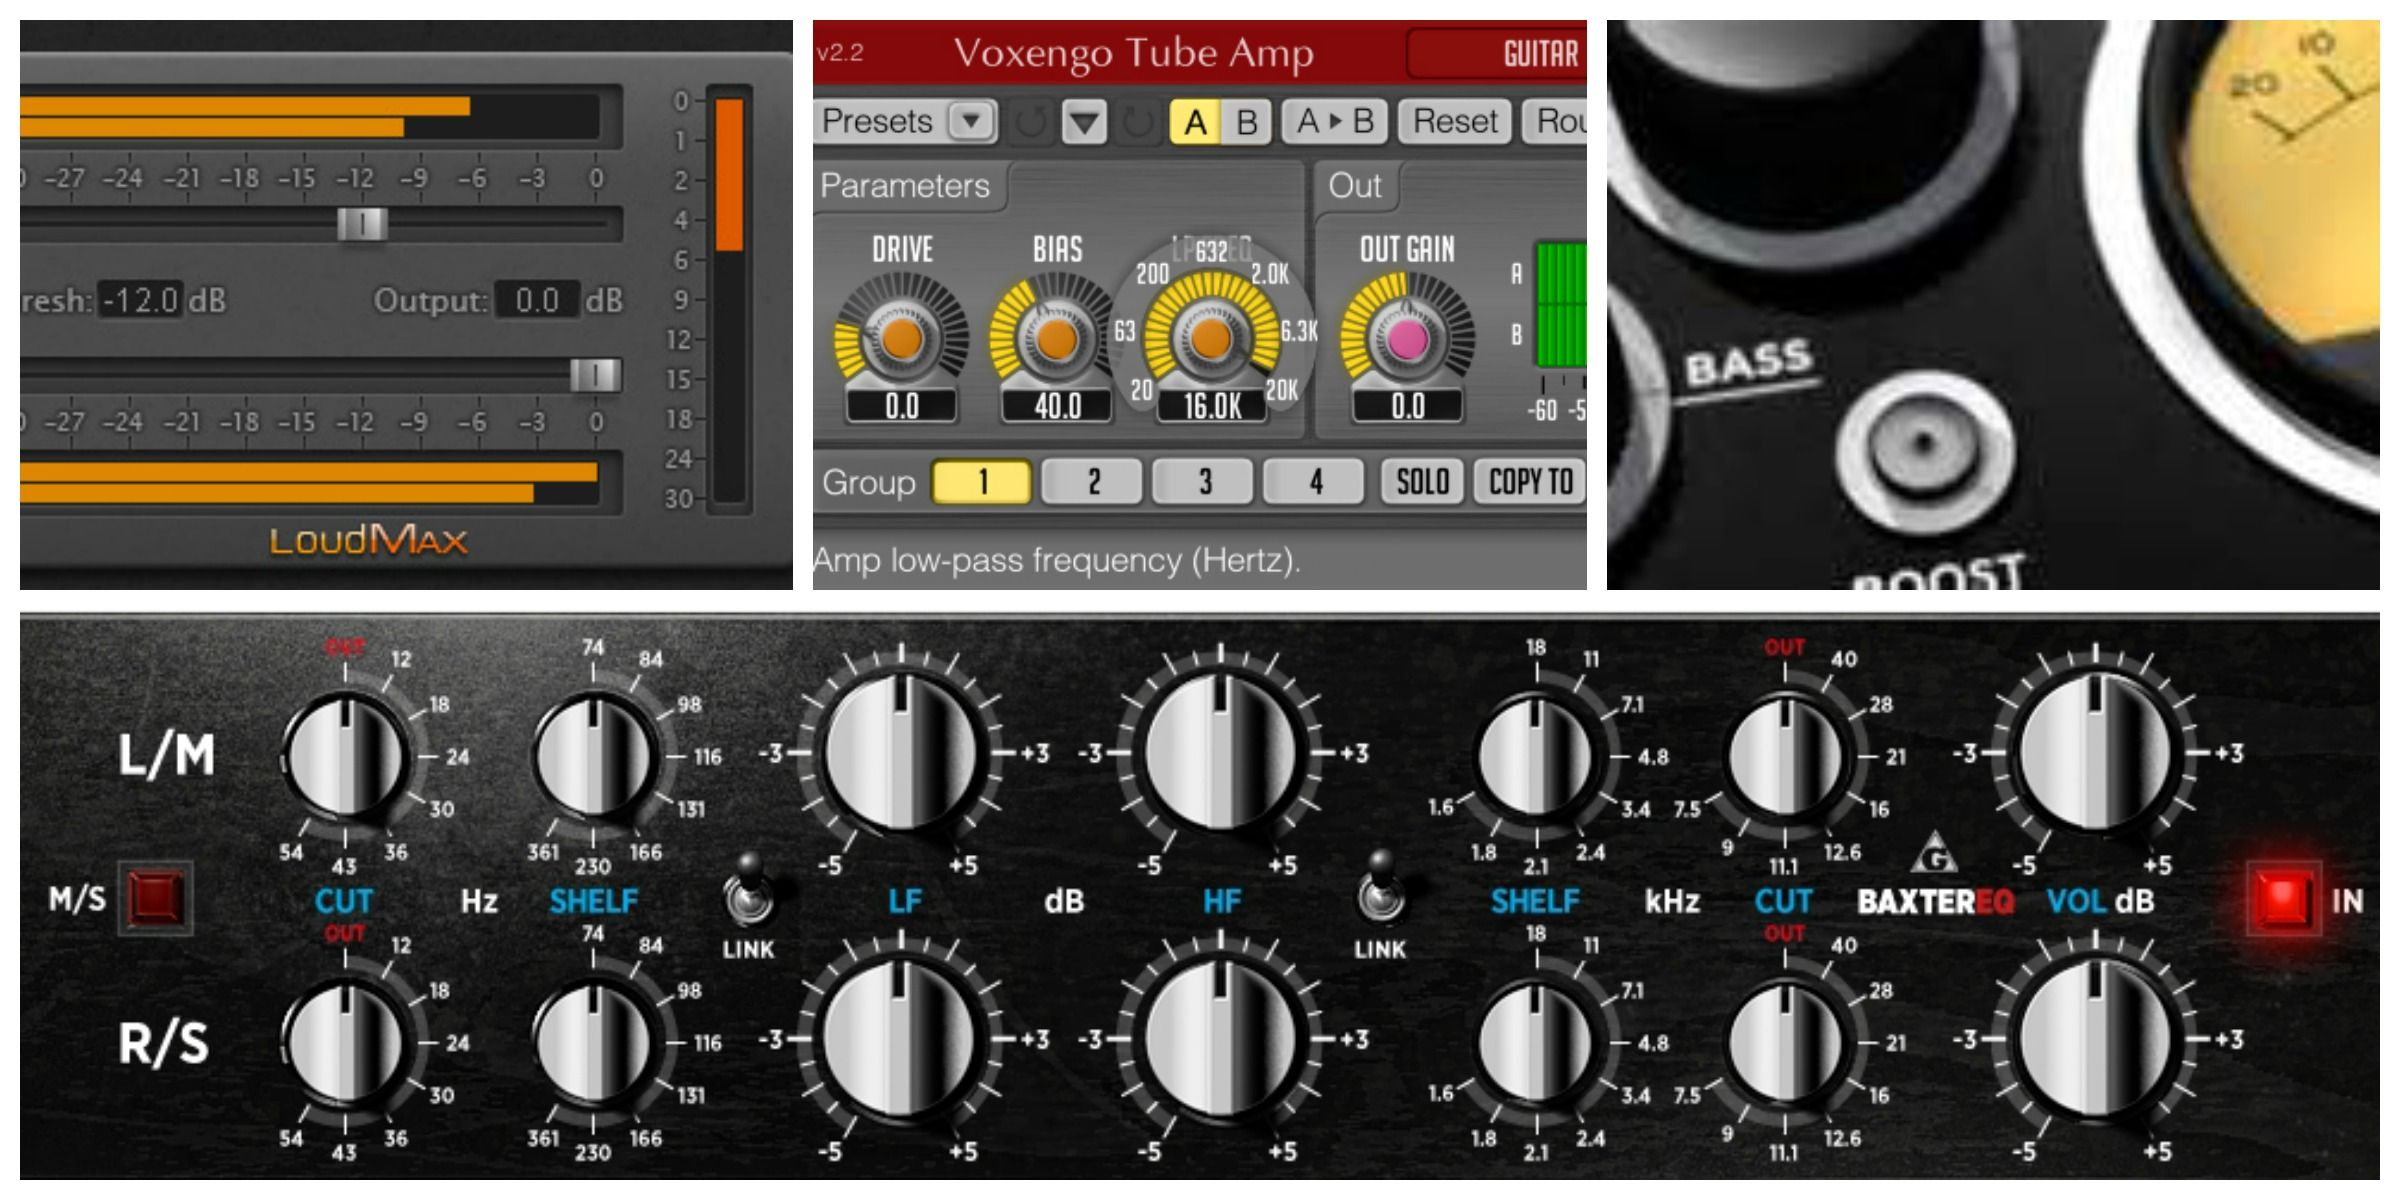 2016 | DAW FX plugins I use with Reaper 5 | by Voxengo